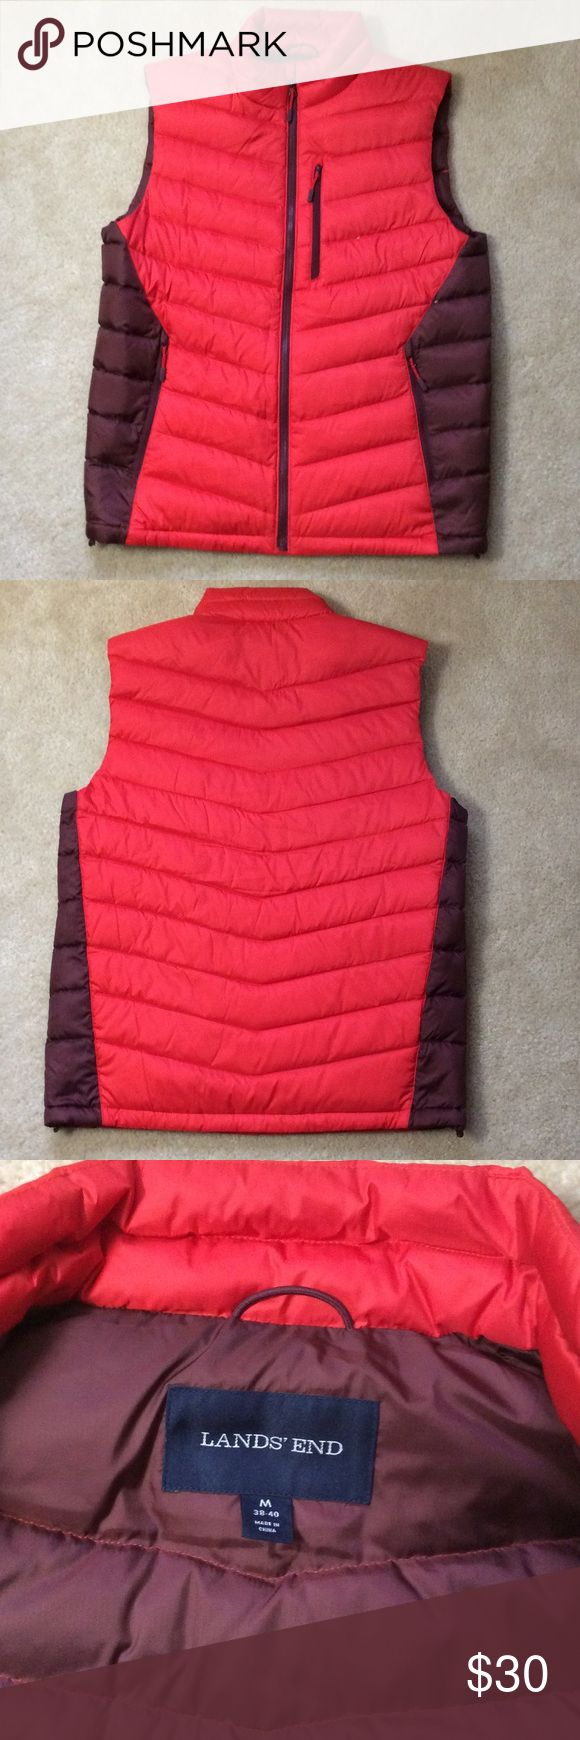 Down Vest Worn once.  90% down, 10% feathers.  Very lightweight. Mens medium, 38-40.  Red and brown. Lands' End Jackets & Coats Vests